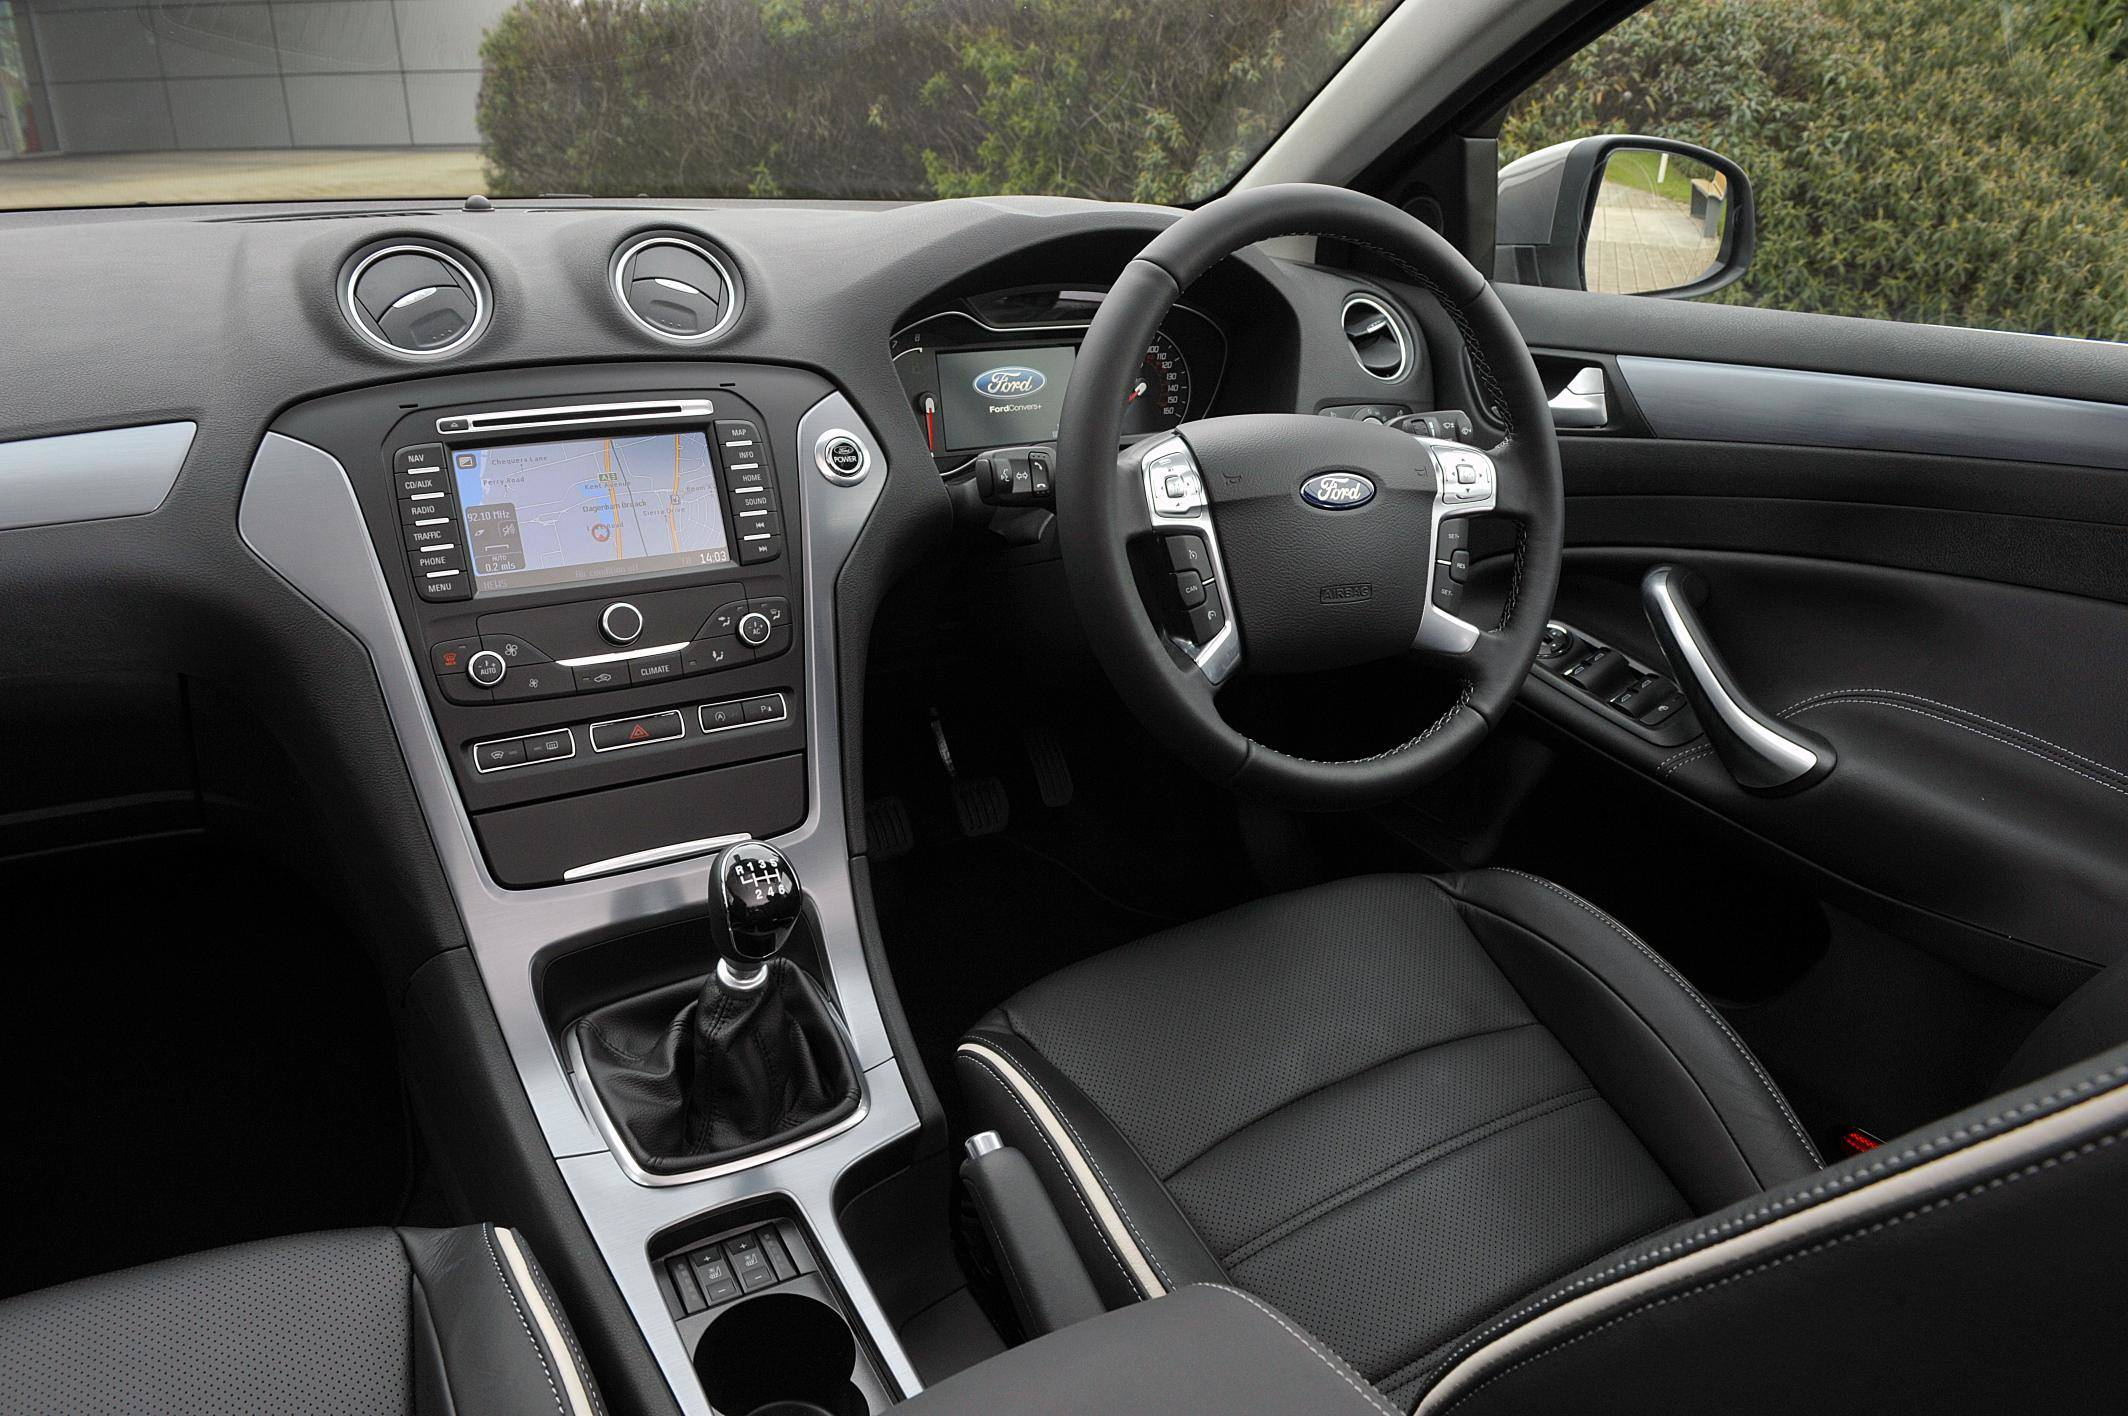 image of a ford mondeo car interior